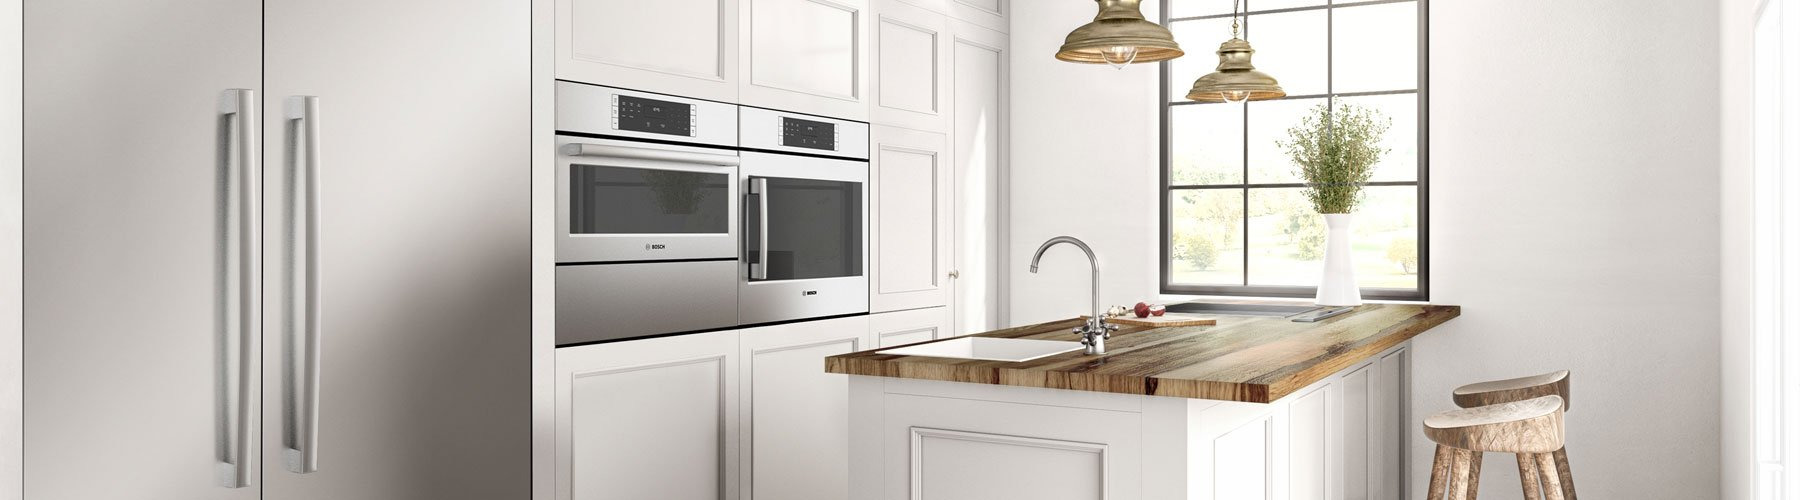 Bosch Benchmark Lifestyle Kitchen Refrigerator and wall Oven